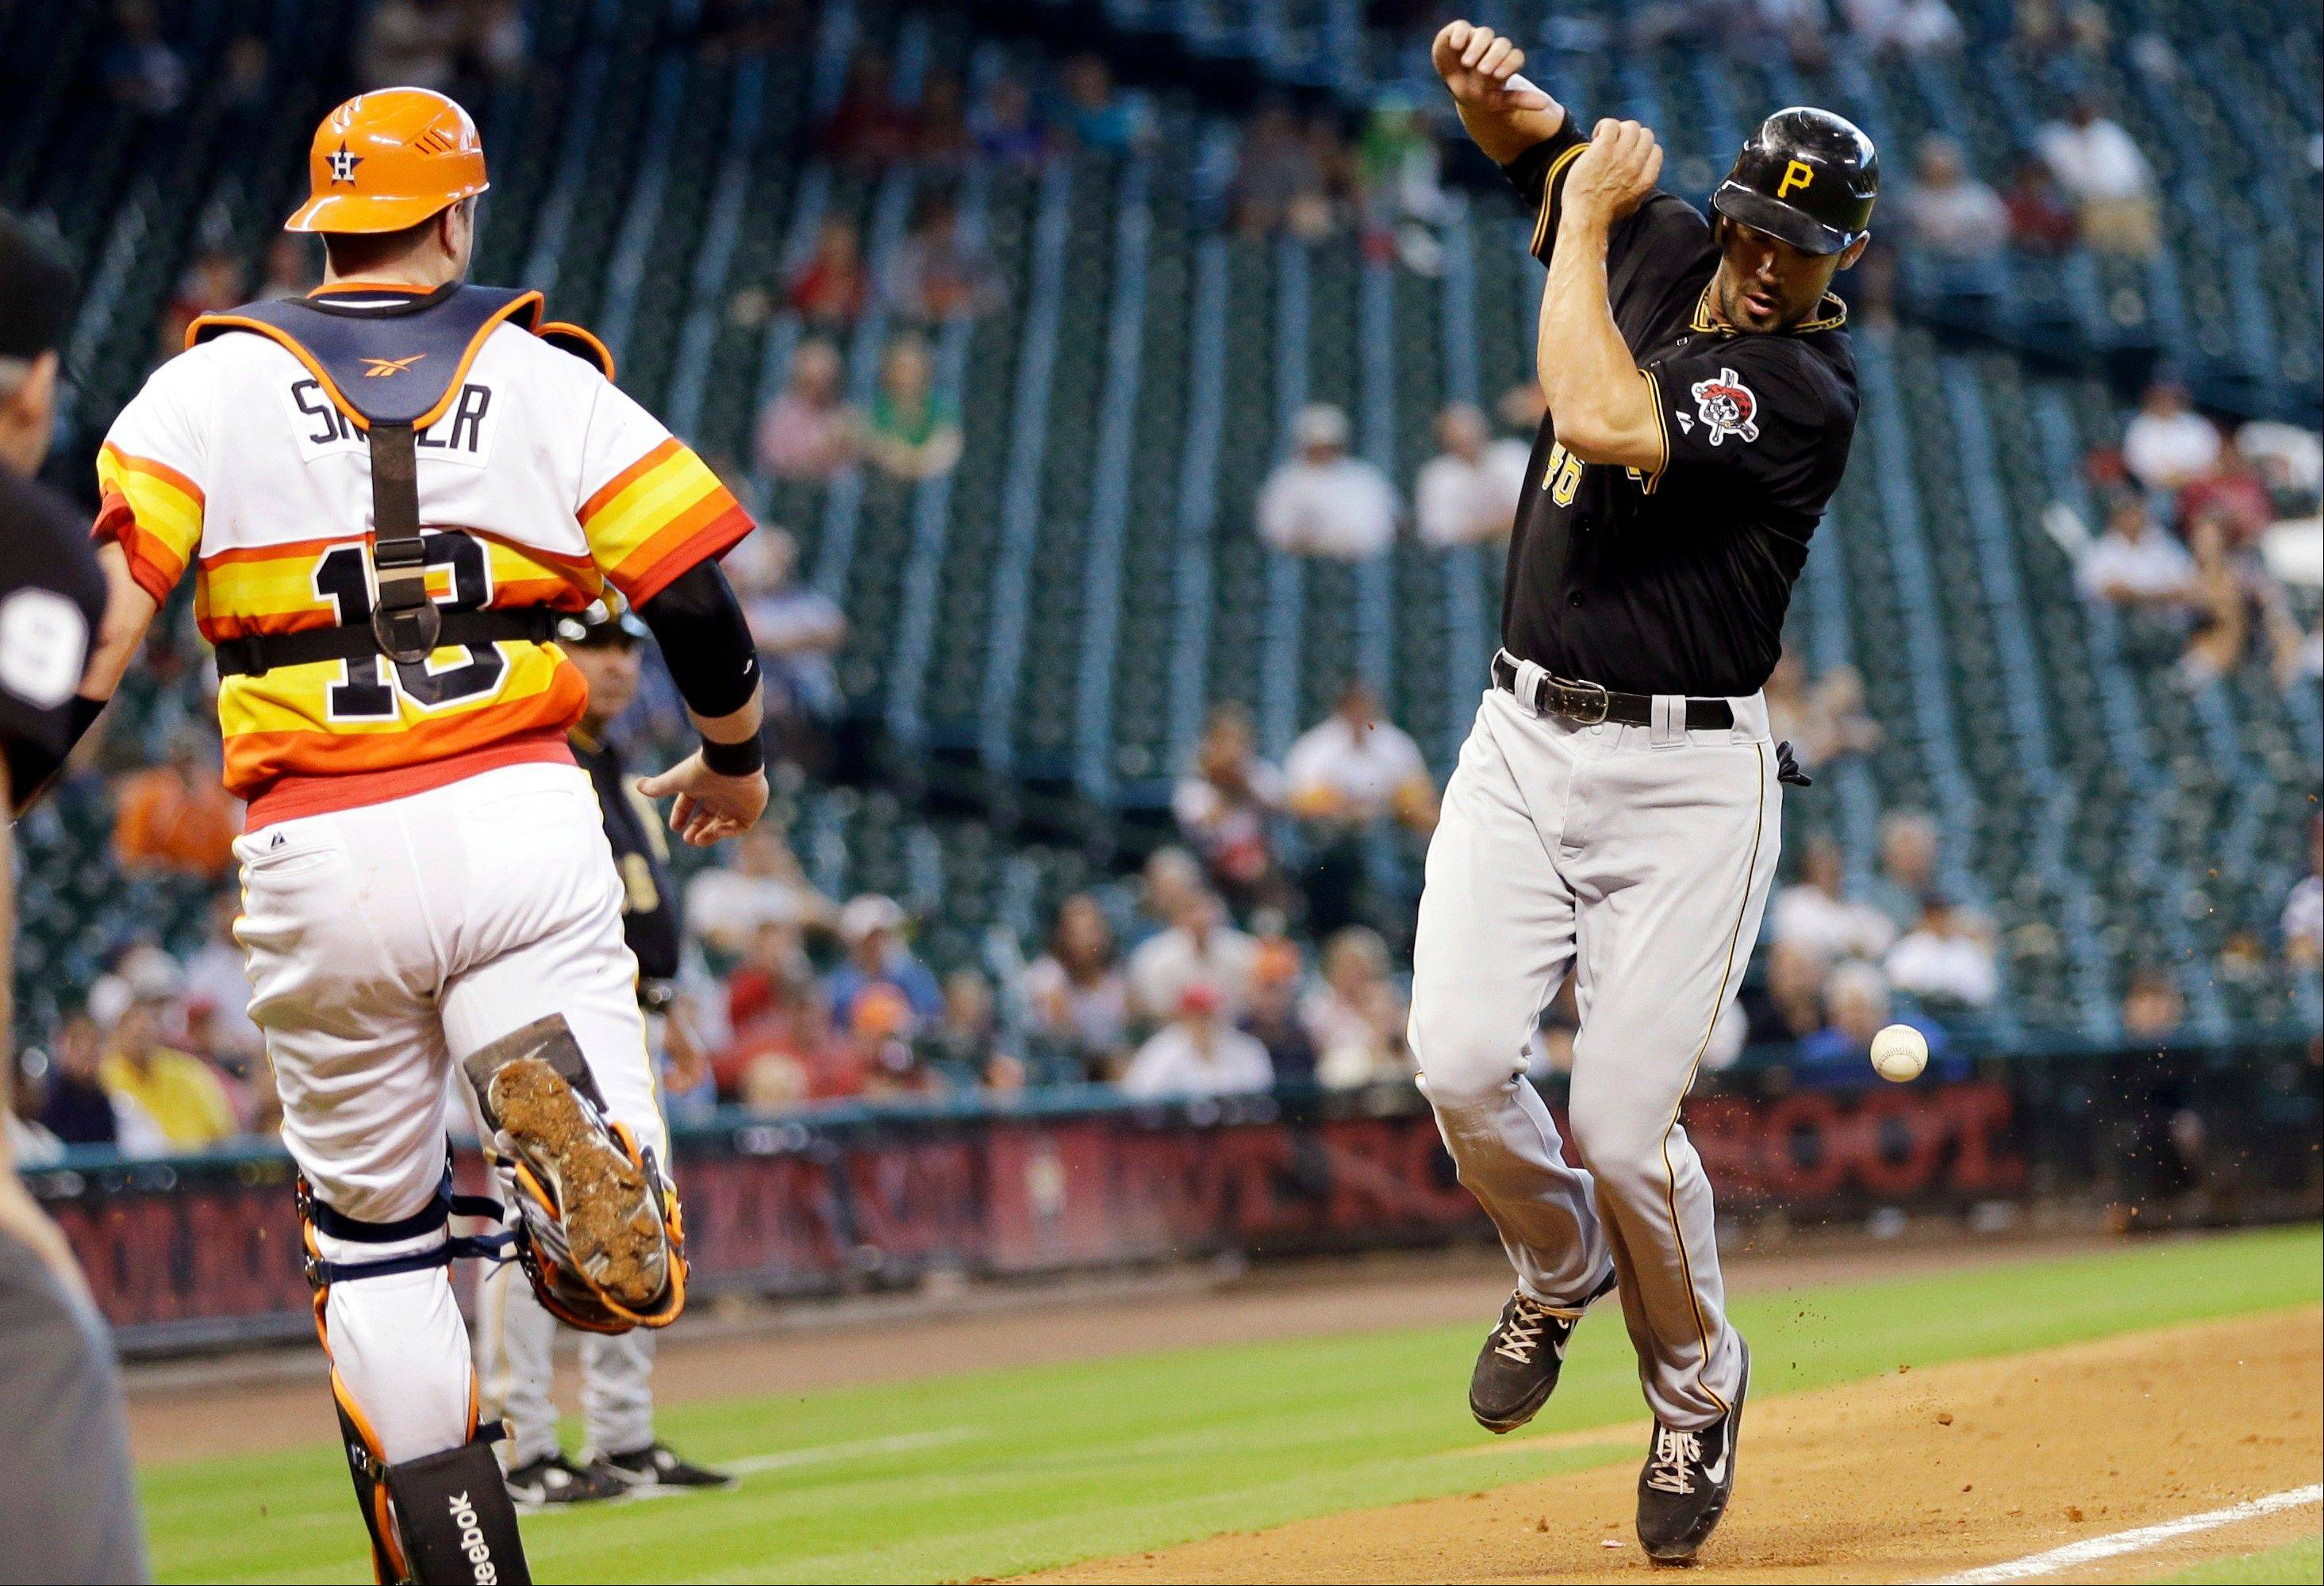 Pittsburgh's Garrett Jones avoids being hit by a foul ball hit by pitcher A.J. Burnett as Astros catcher Chris Snyder runs down the third base line during the fourth inning Sunday in Houston.